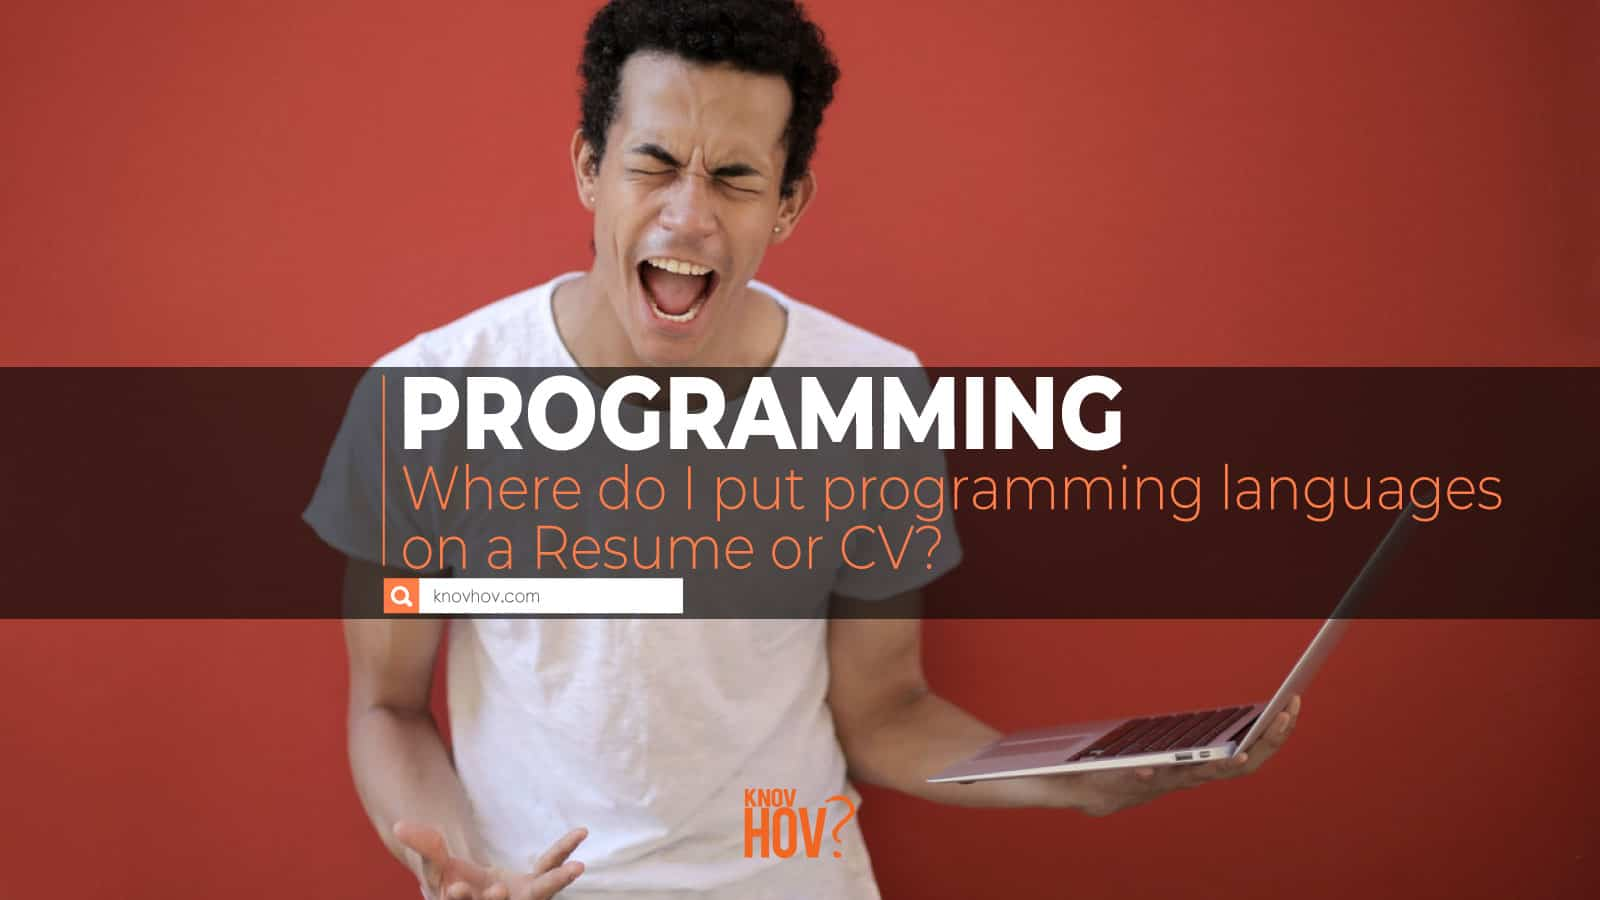 Where do I put programming languages on a resume or CV?